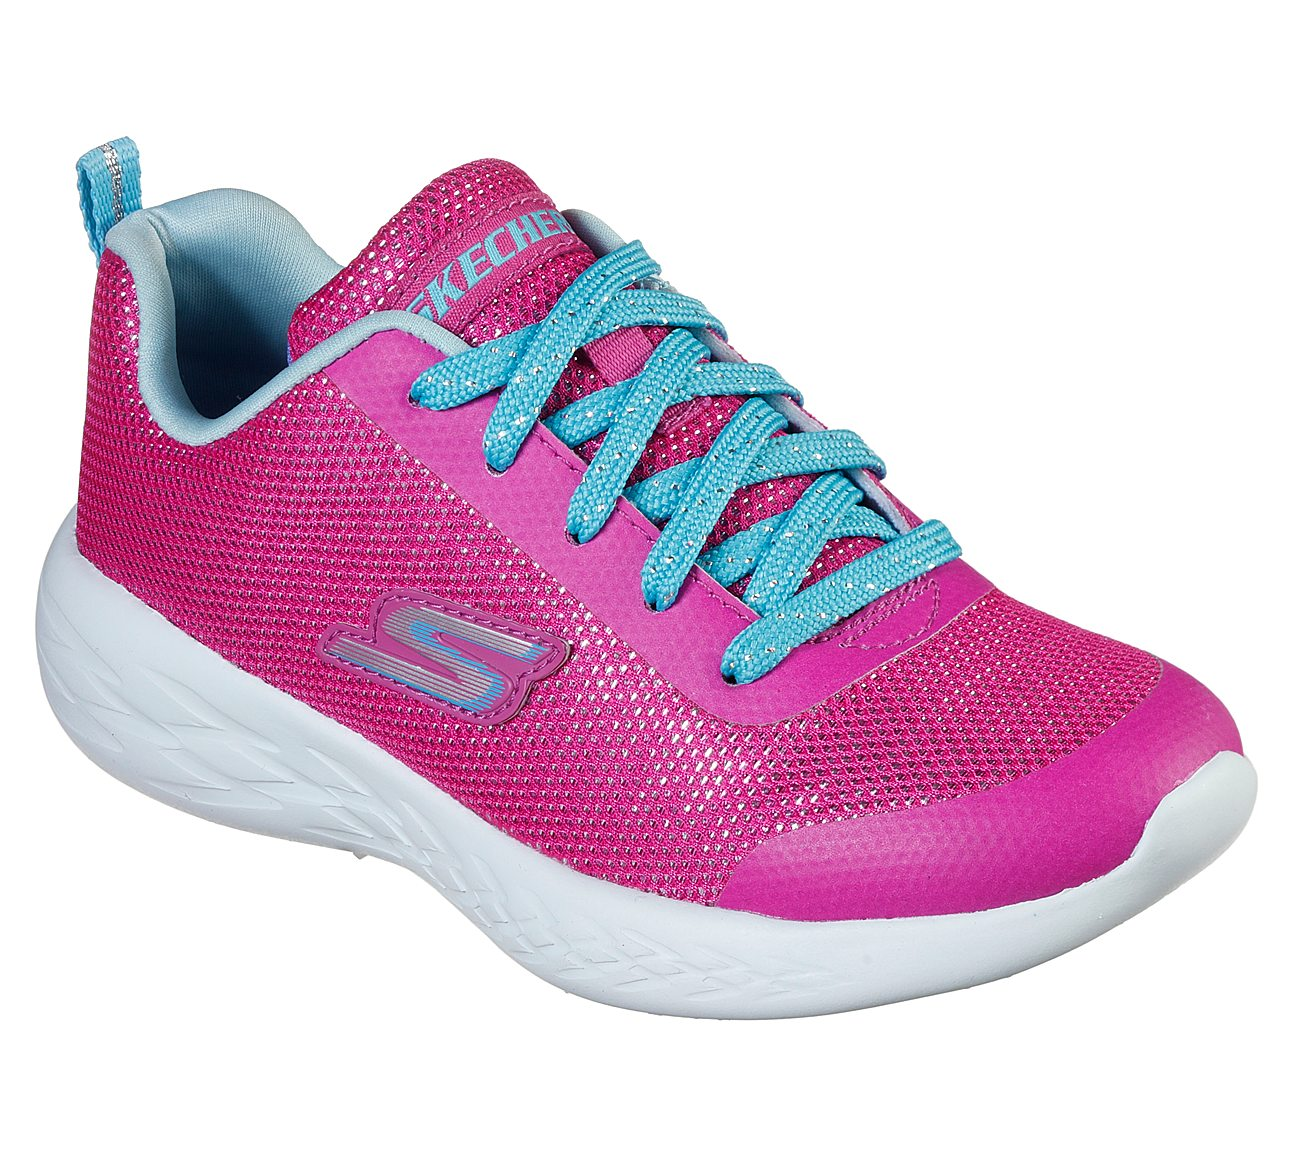 Skechers GOrun 600 - Sparkle Zoom